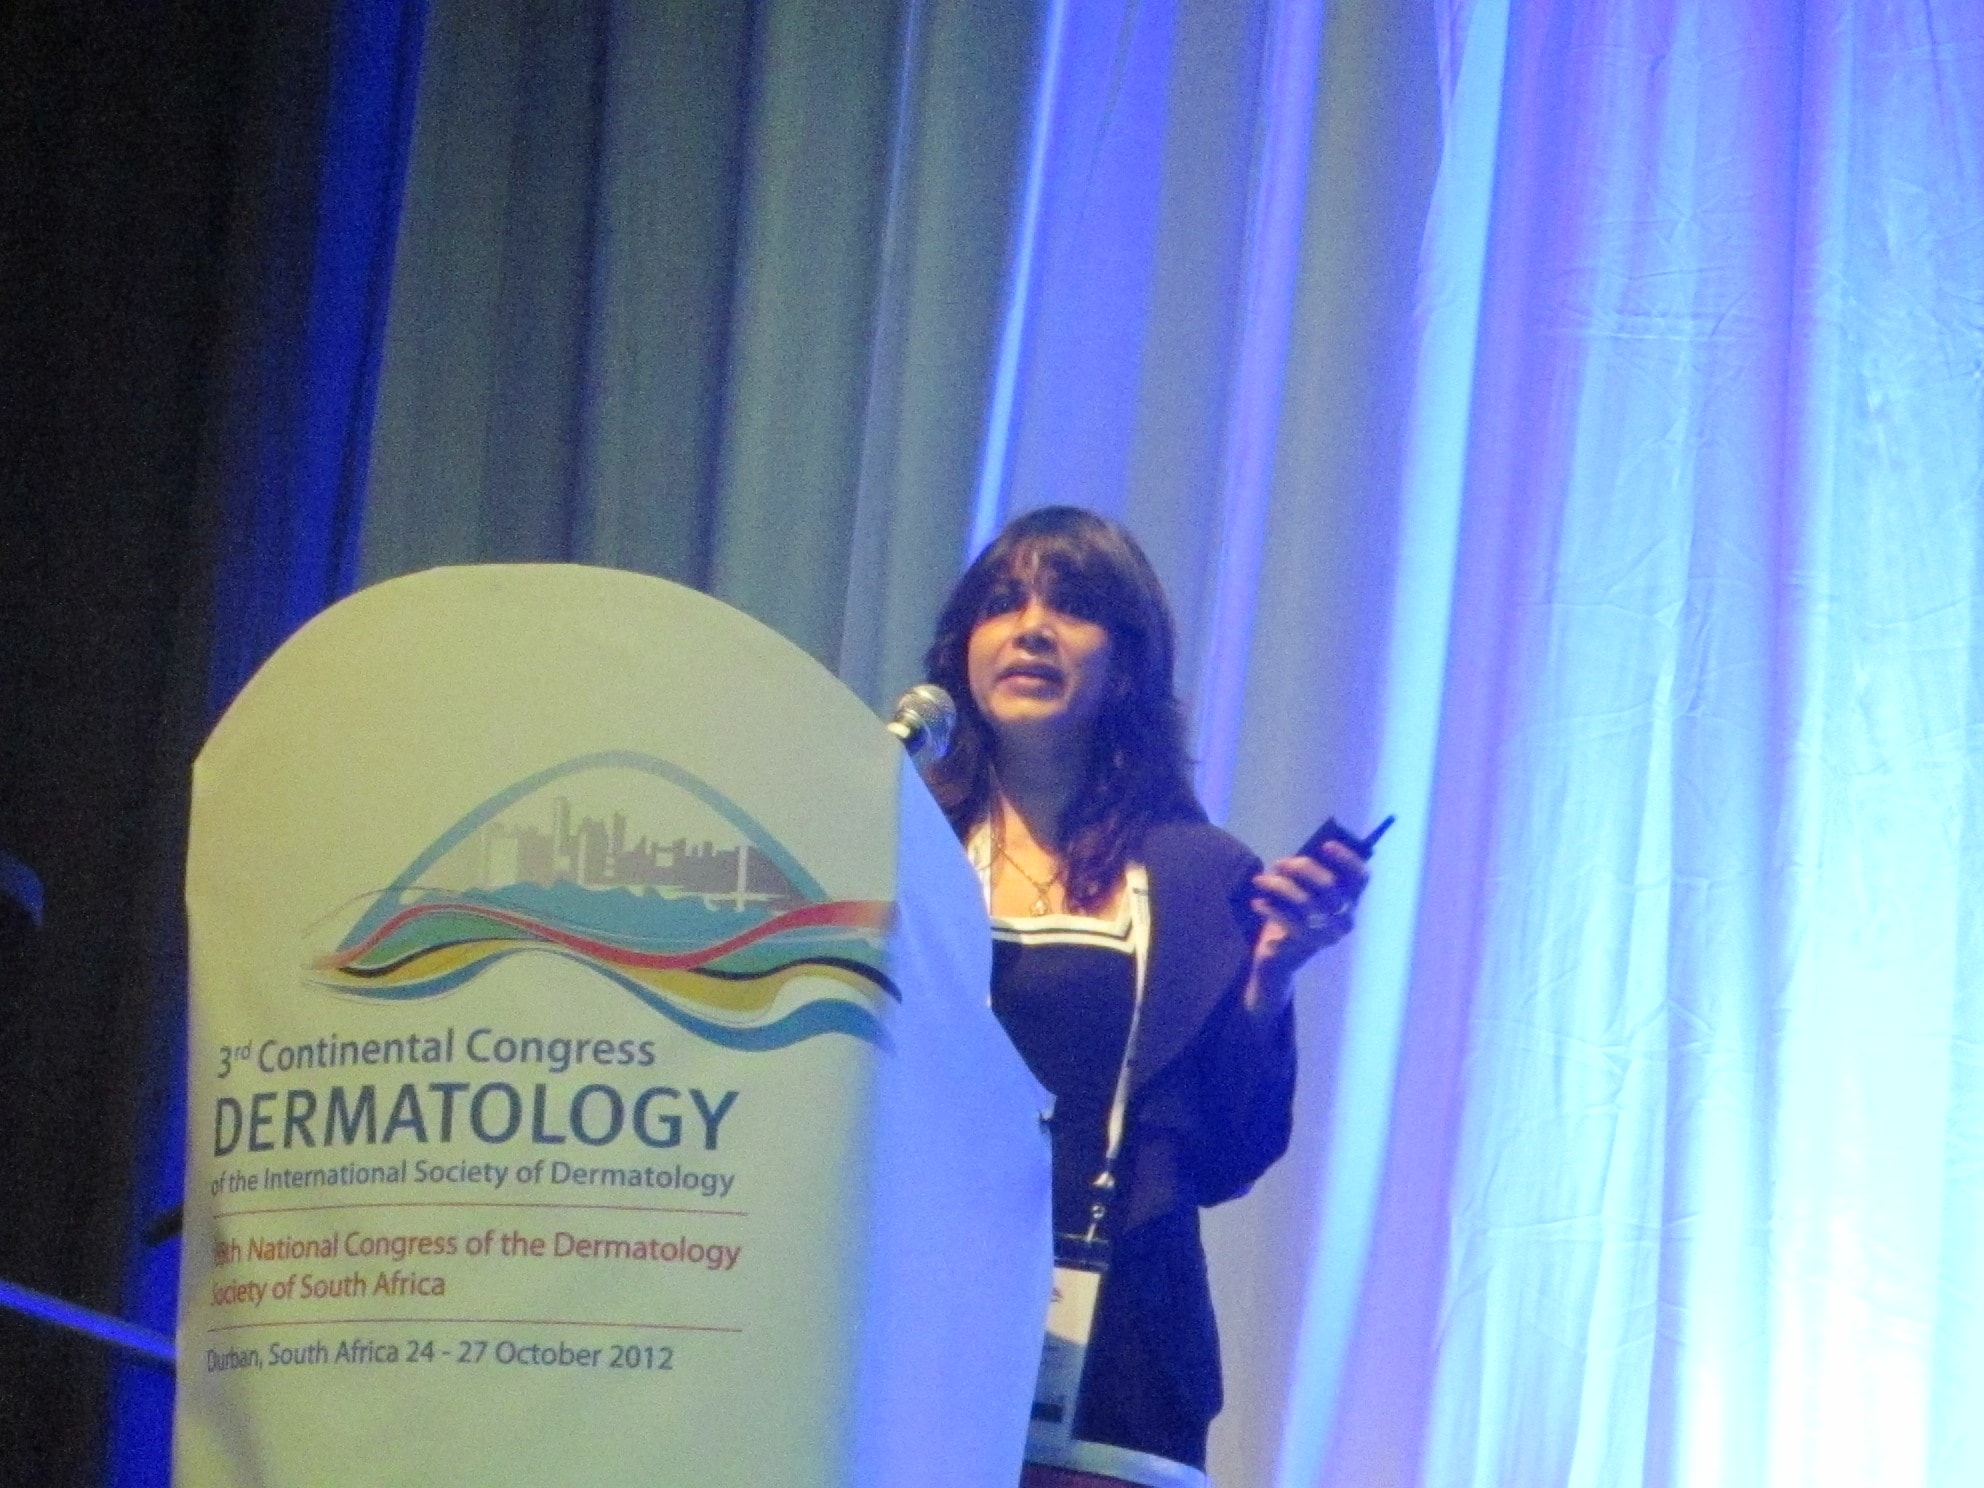 2012- 8th National Congress of the Dermatology of South Africa